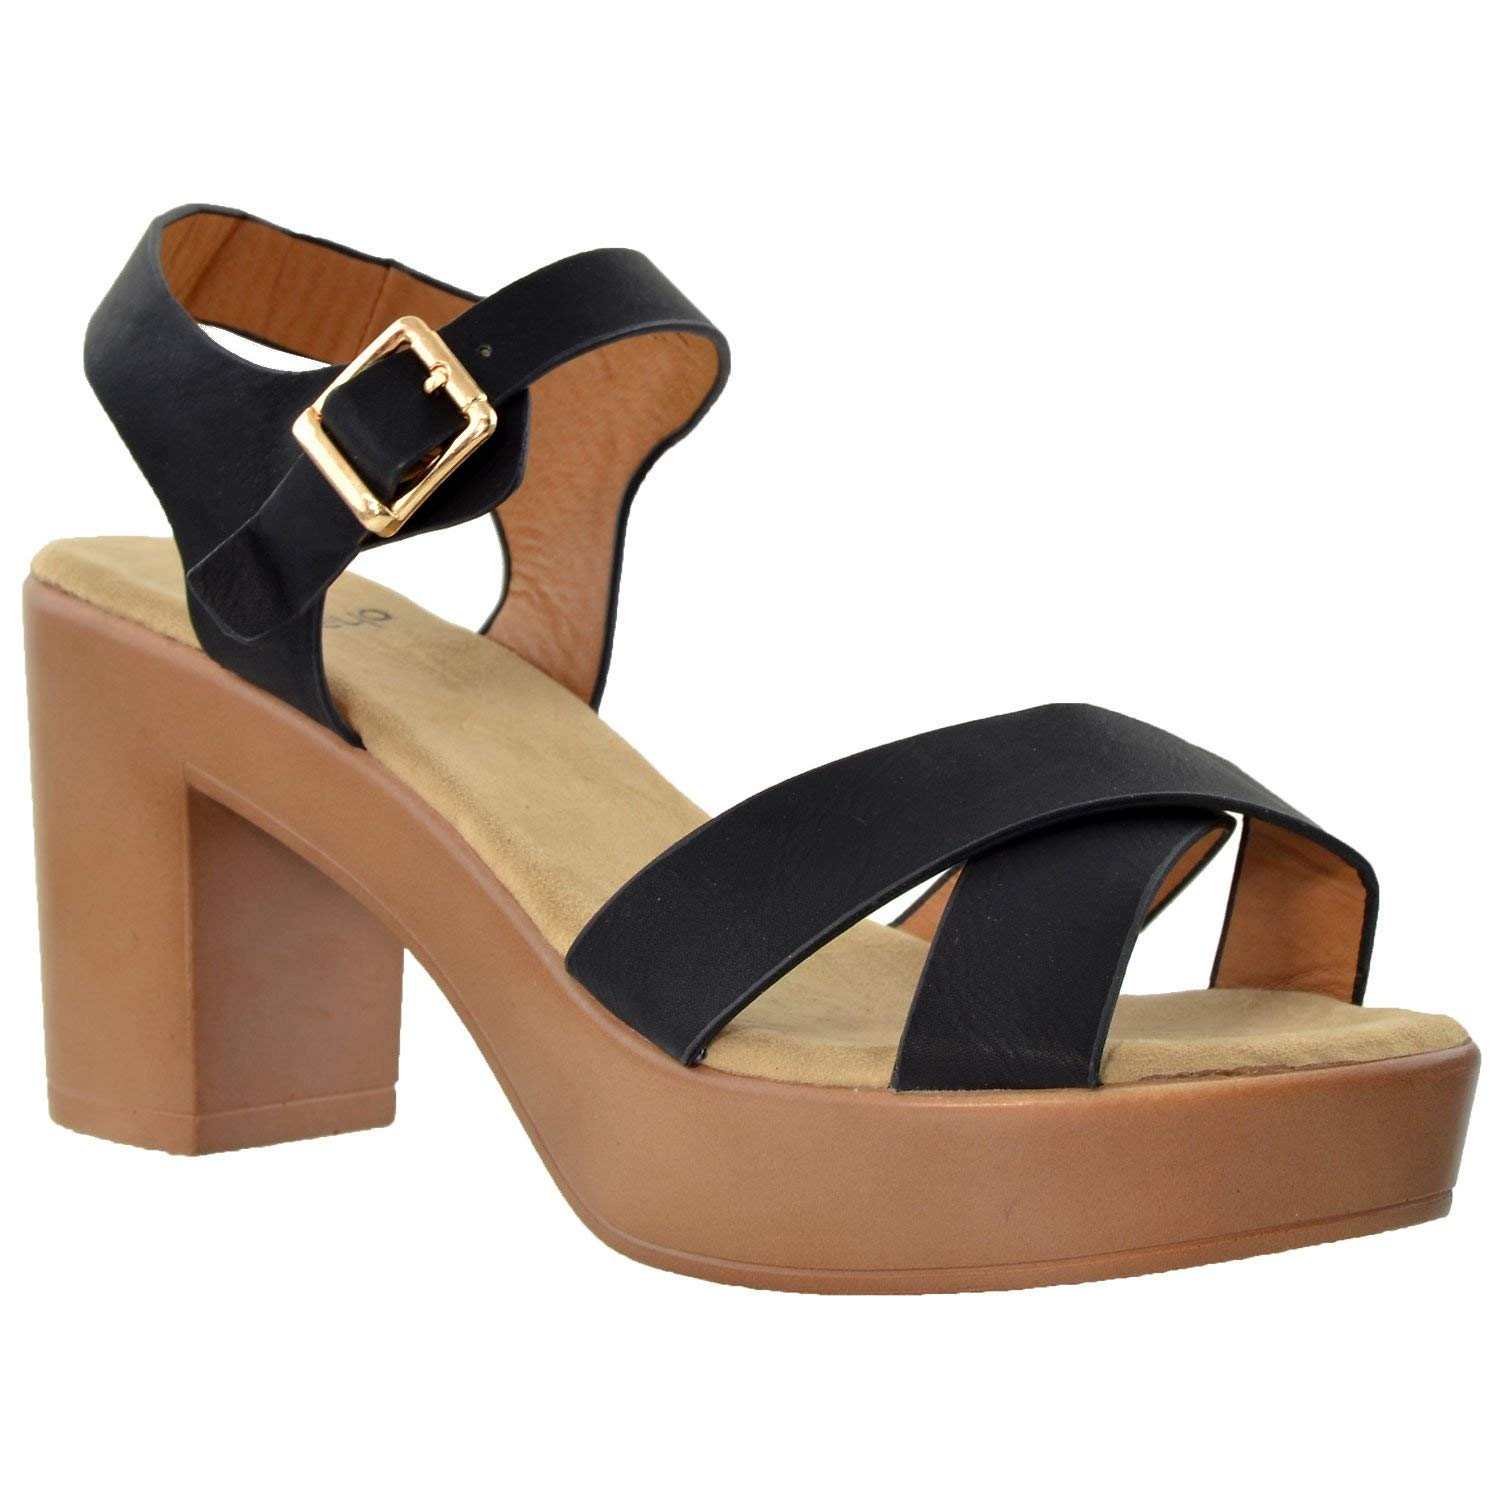 0a815c9a00f Get Quotations · SOBEYO Womens Platform Sandals Open Toe Crisscross Strap  Chunky Block Heel Shoes